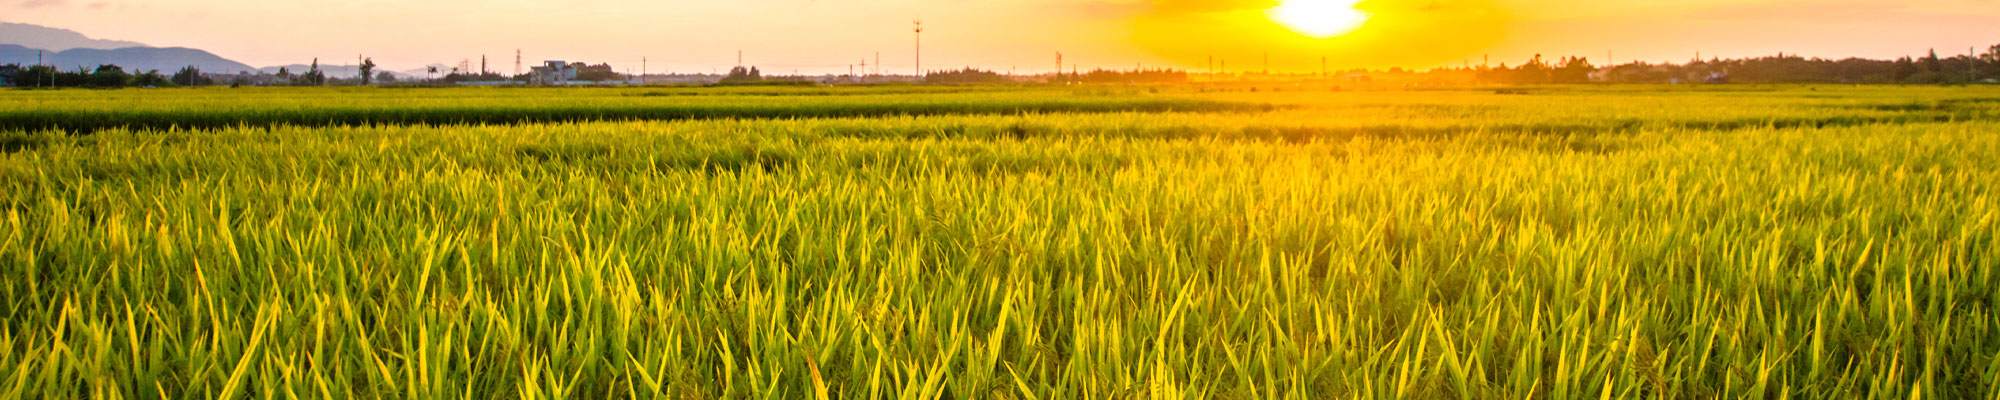 Ground level image of a rice field at sunset.